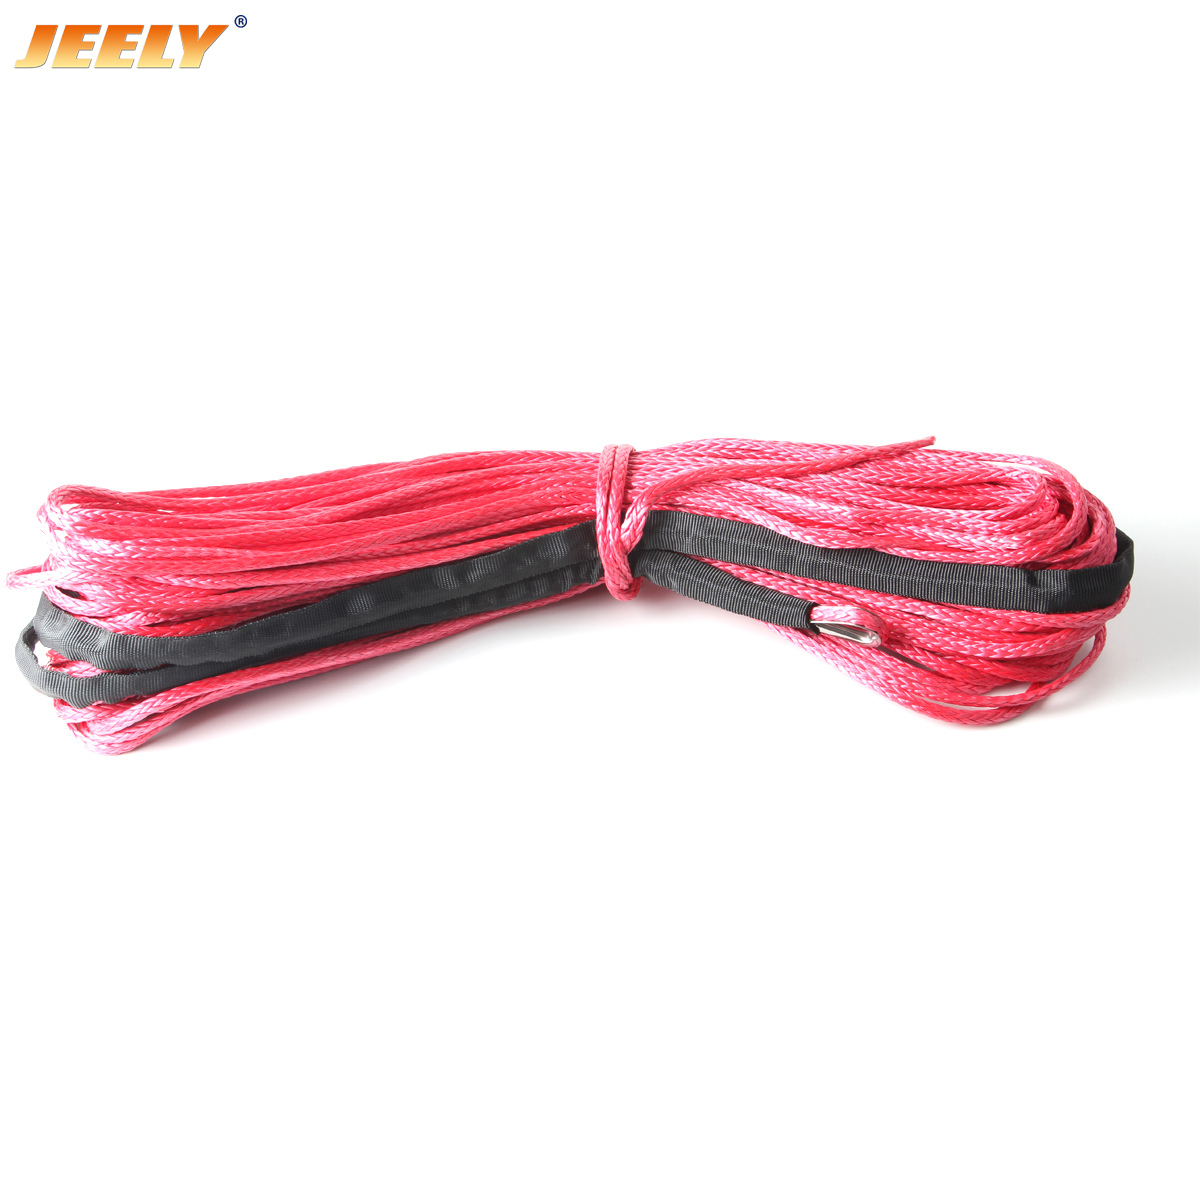 14mm*15m Synthetic UHMWPE 4WD Towing Winch Rope with Thimble